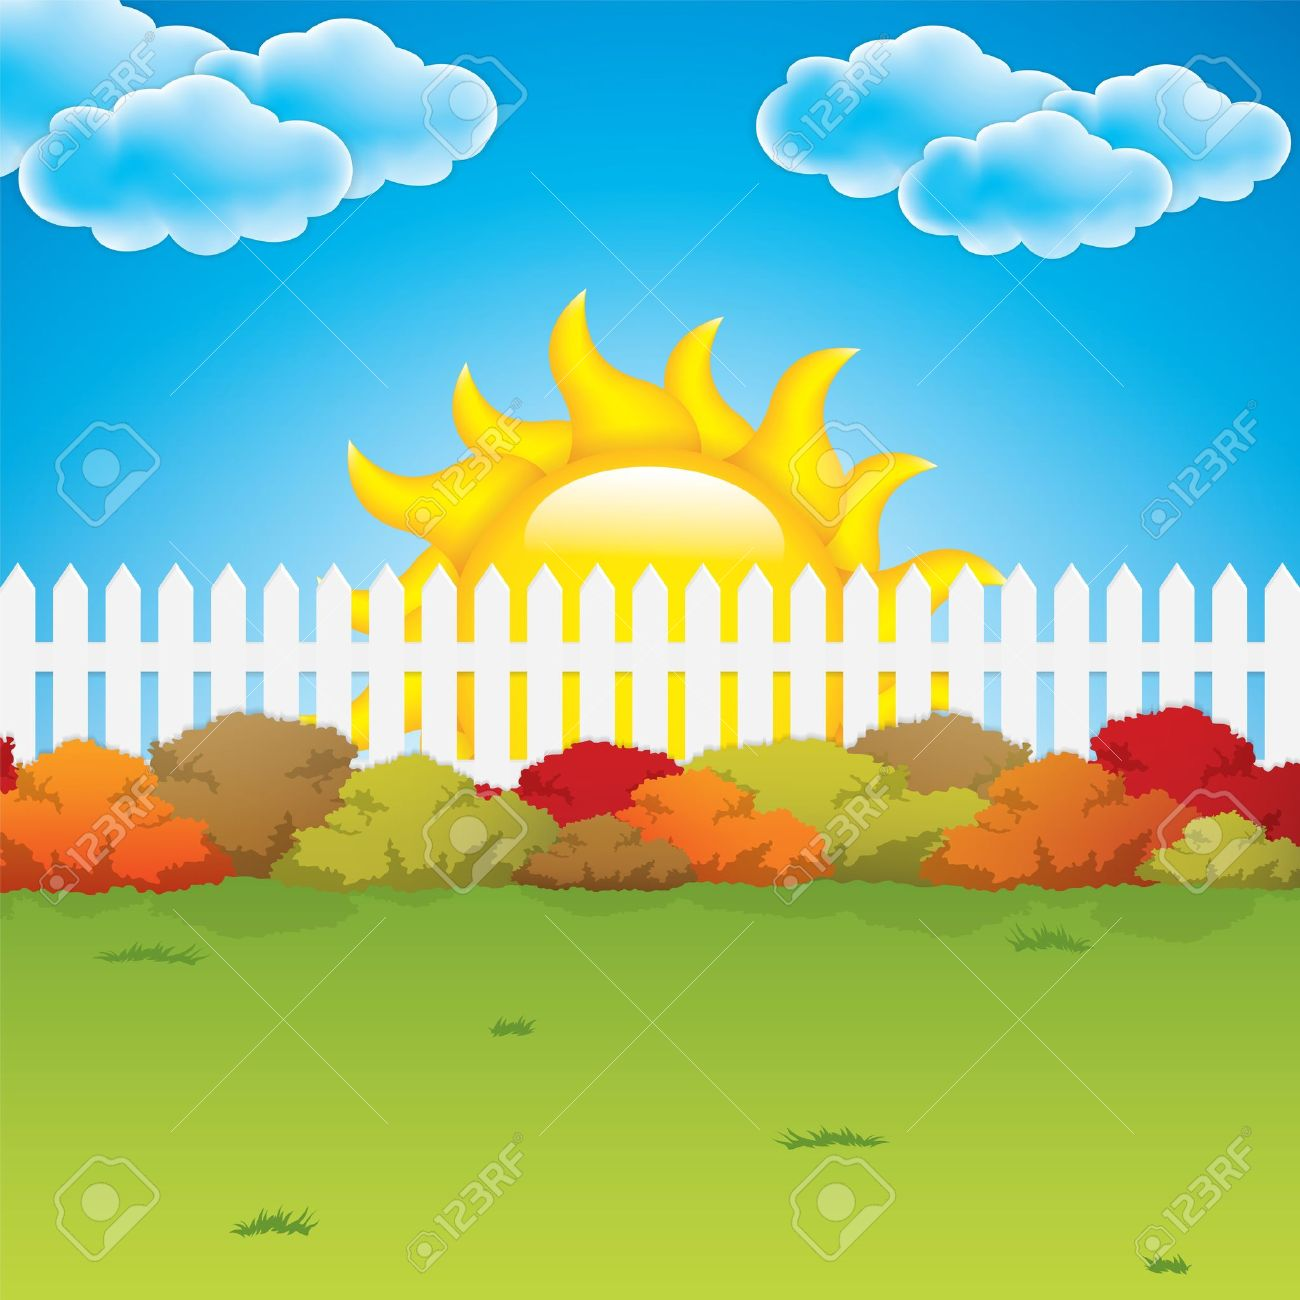 Autumn Garden With Bushes And Fence Vector Stock Vector   14616210